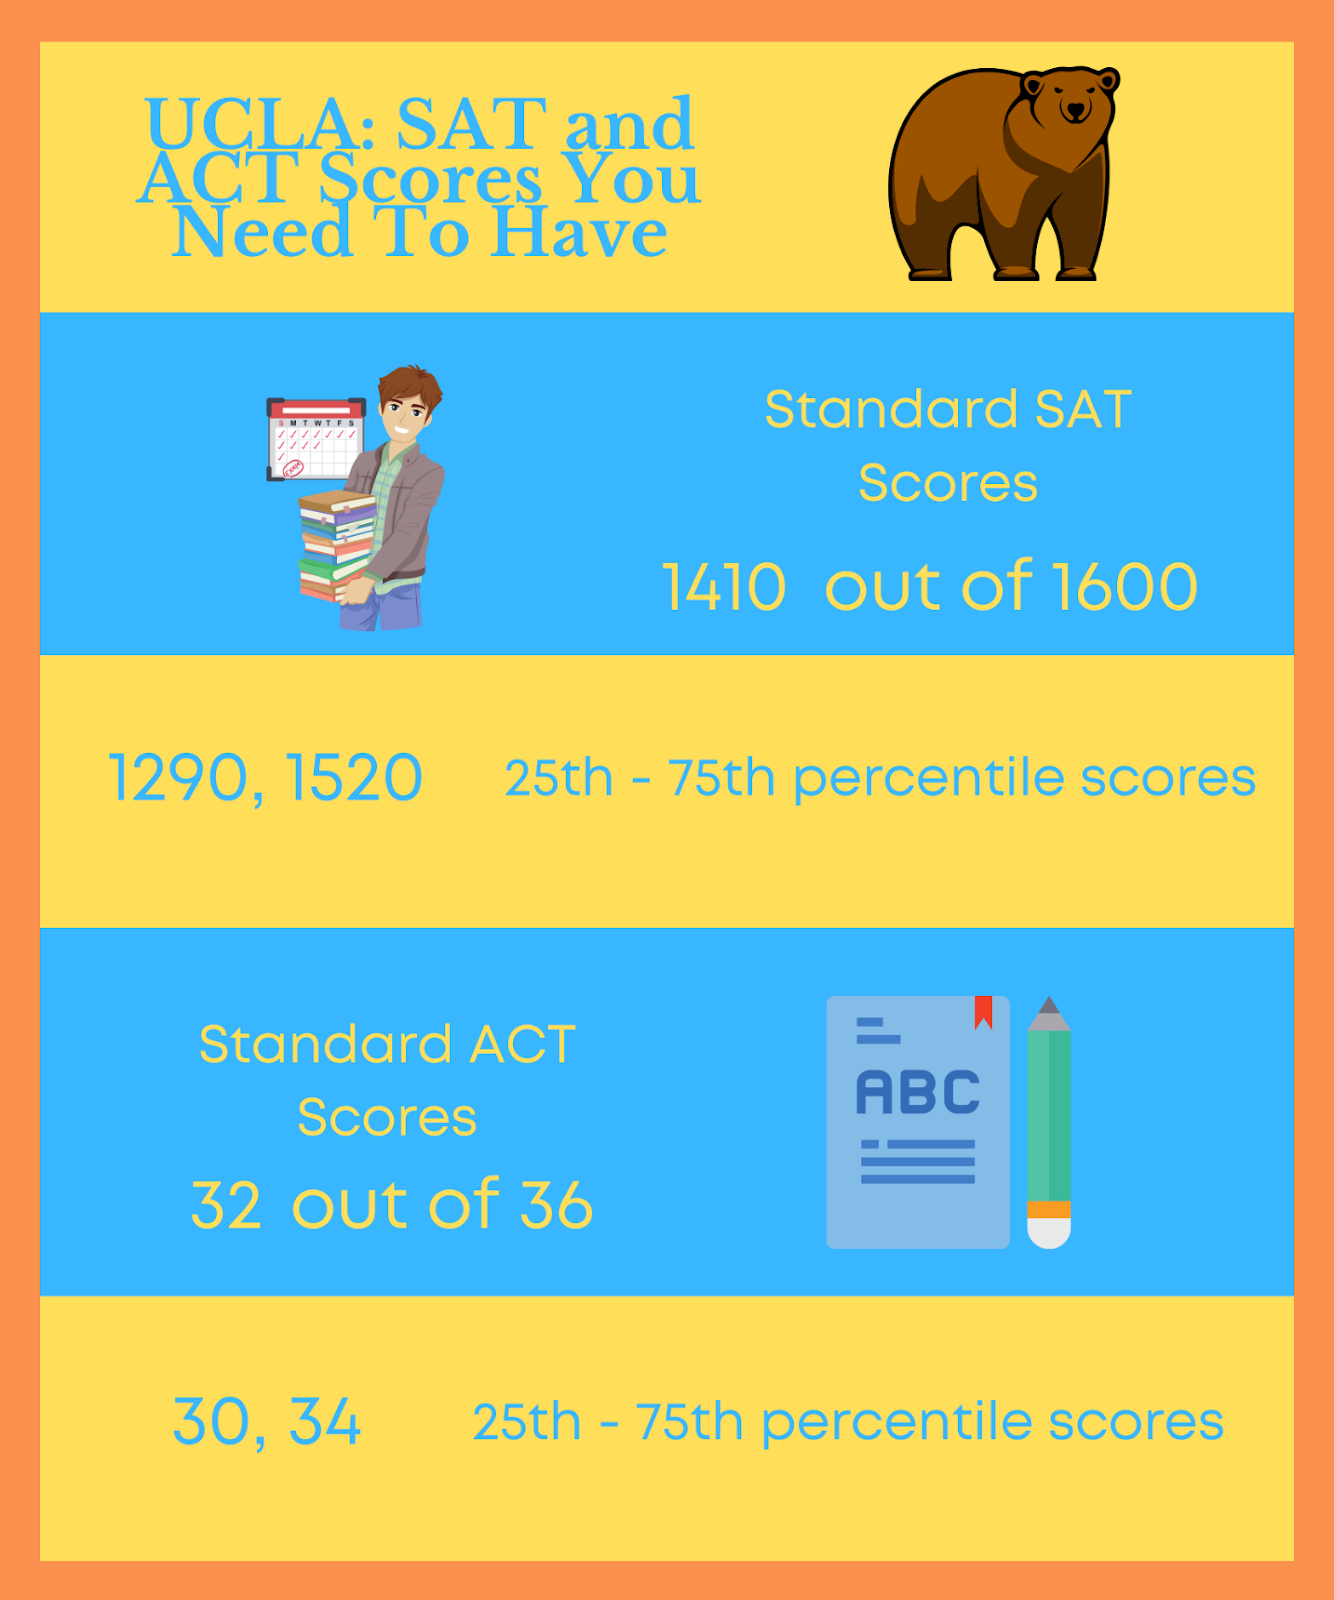 UCLA SAT and ACT Scores